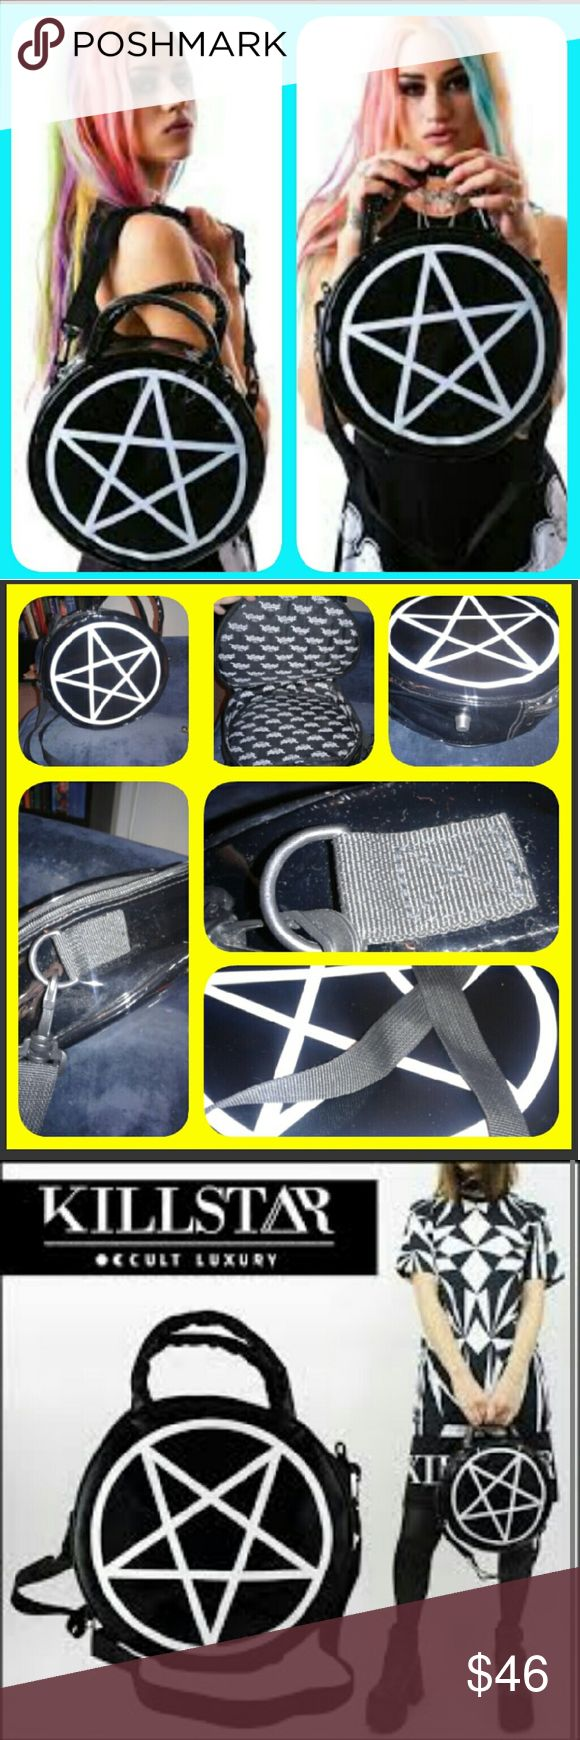 Bad Ass SOLD OUT everywhere killstar pentigram bag This thing is bad Ass!!it's sold out online carried twice only lining is perfect ,zippers are perfect,can carry with the shoulder strap or carry by handles for a more Lolita goth look...* note one small flaw one of the handles is a going slightly undone it can be hand stiches i did not do it because I did not want to affect the bag in any way..no other flaws tears or anything *No swap on this item** note my bag has a two point star that's…